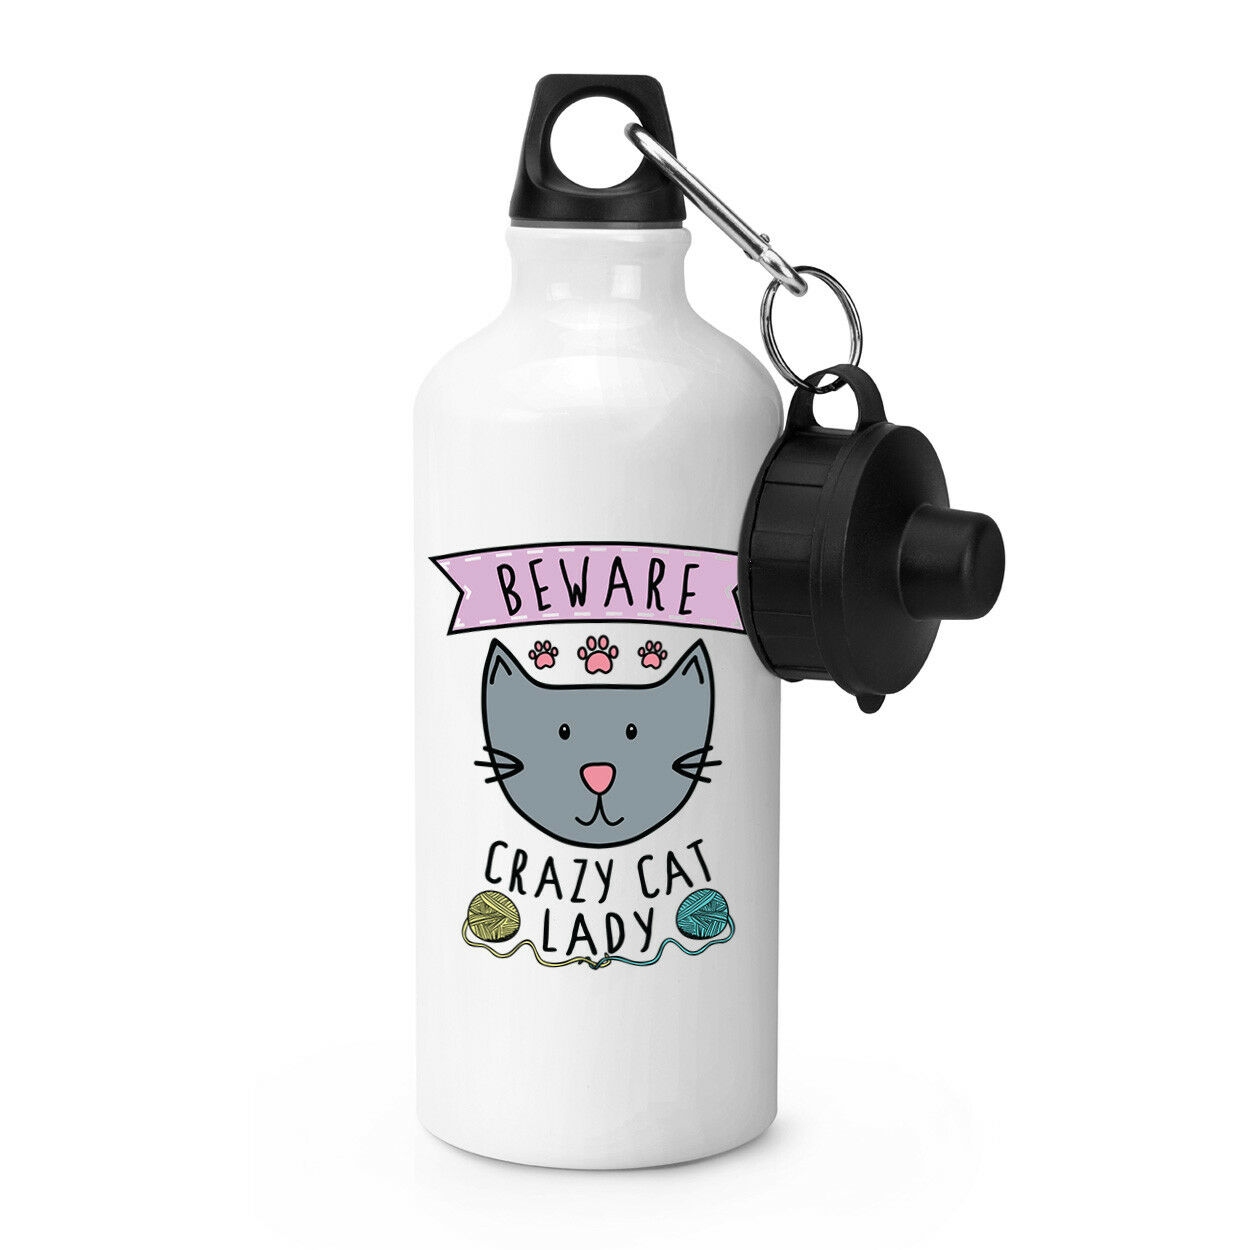 Méfiez-vous Crazy Cat Lady Sports Boisson Bouteille Camping Chaton fiole-Drôle Animal Chaton Camping 26b6cd